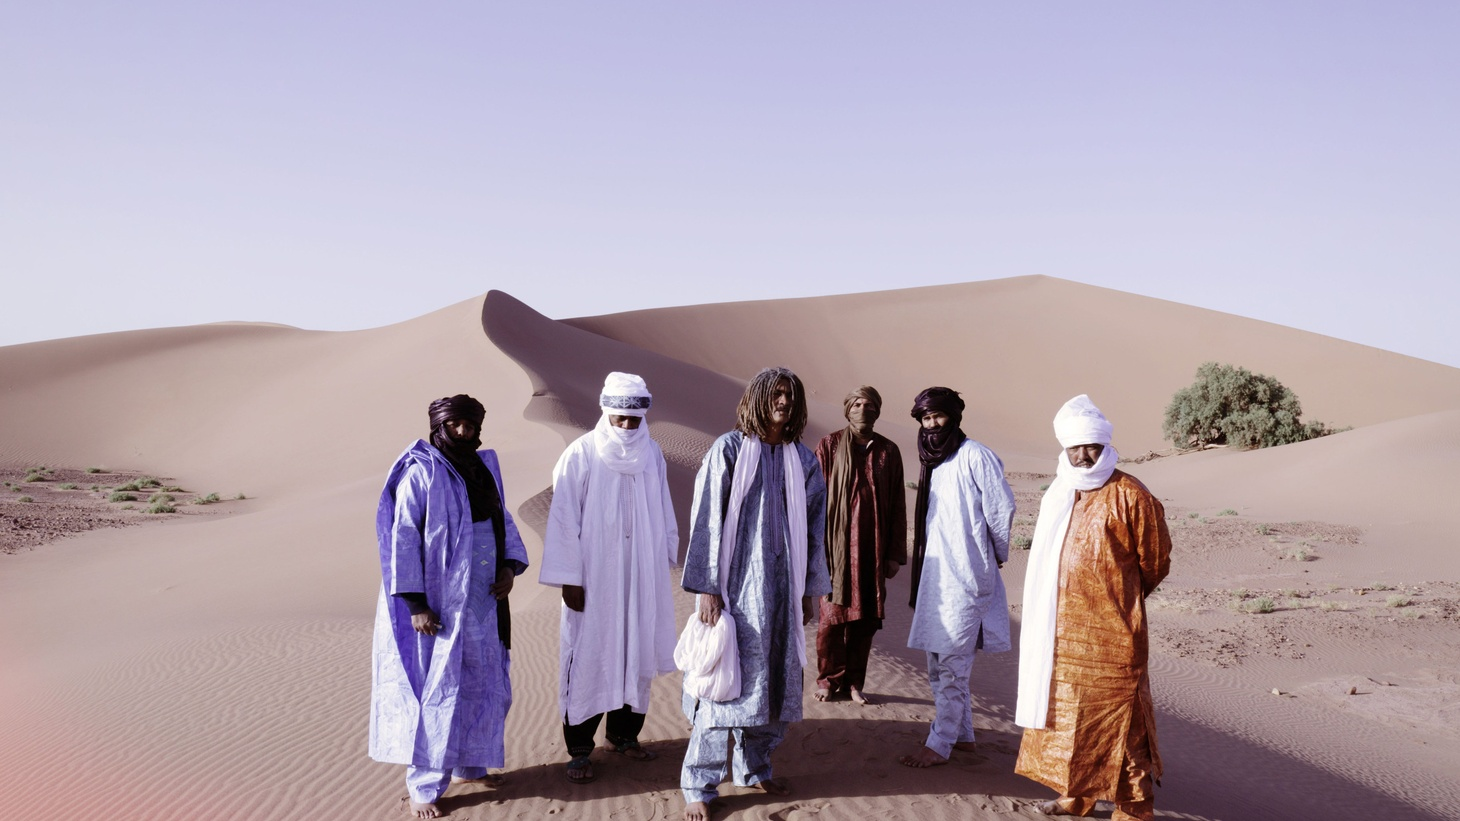 Tuareg band Tinariwen has been touring the world for years with hypnotic desert psych-blues. Meanwhile, their homeland in the Saharan mountains has become a conflict zone.